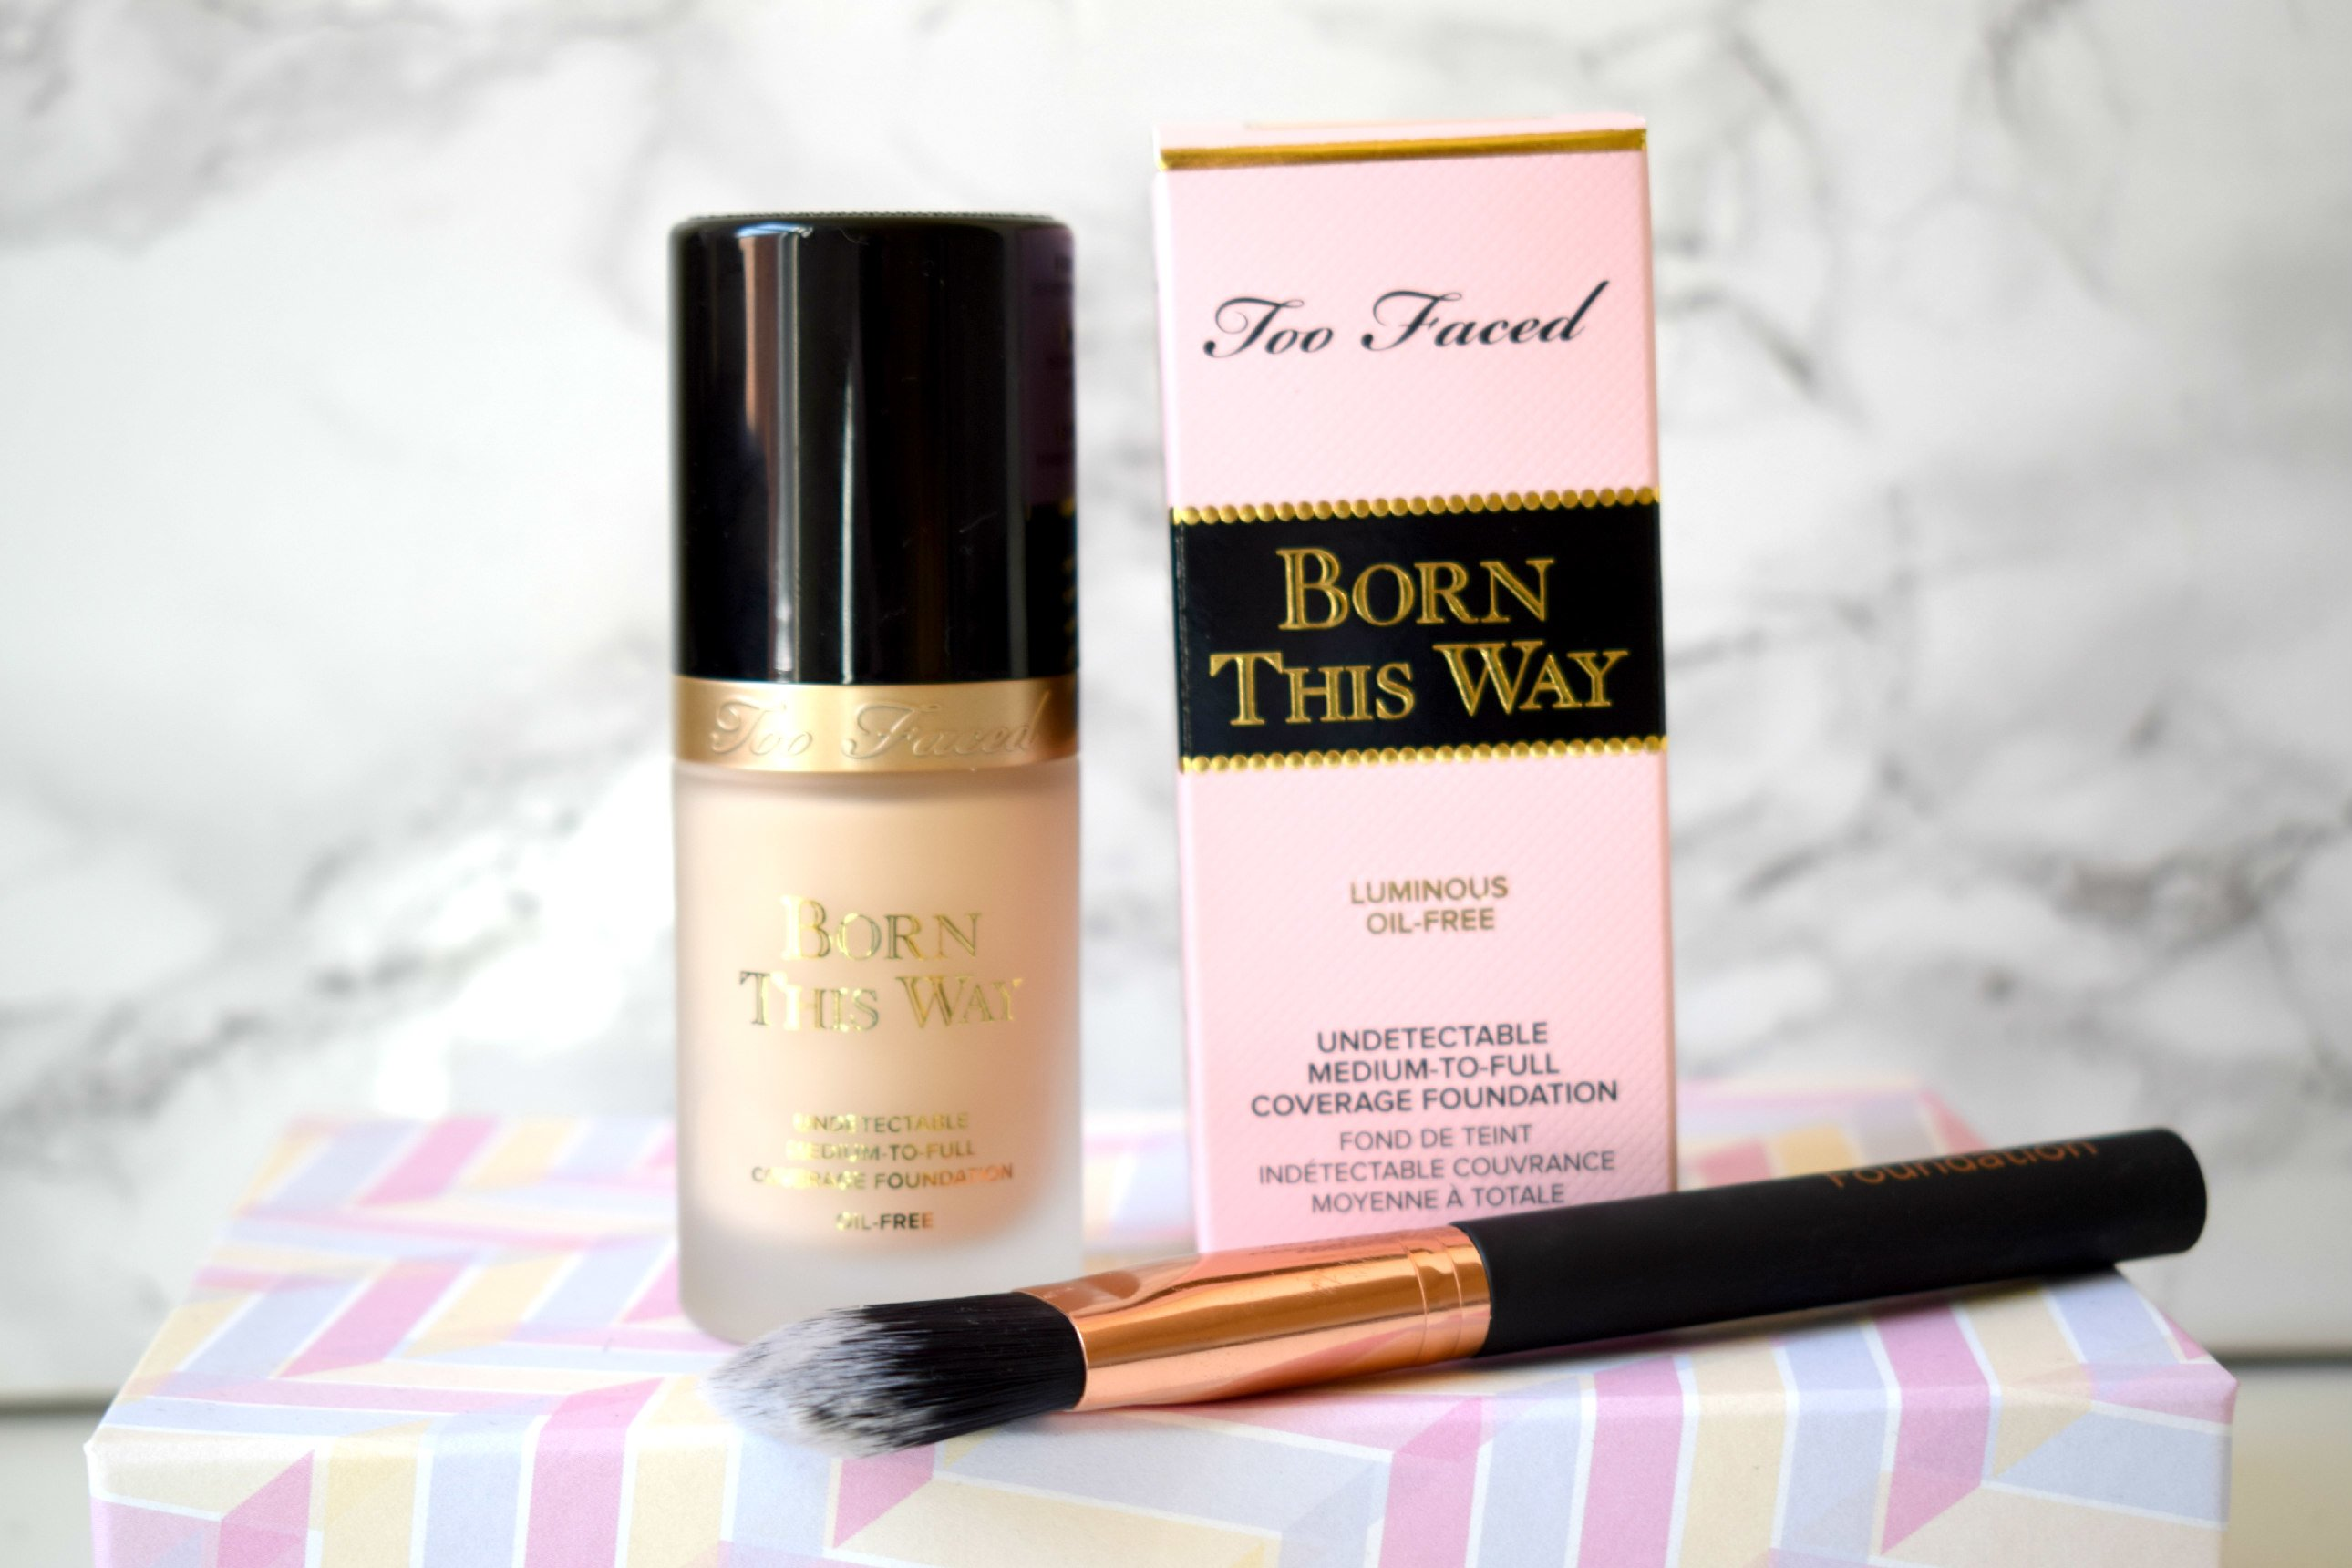 Too Faced 'Born This Way' Foundation Review